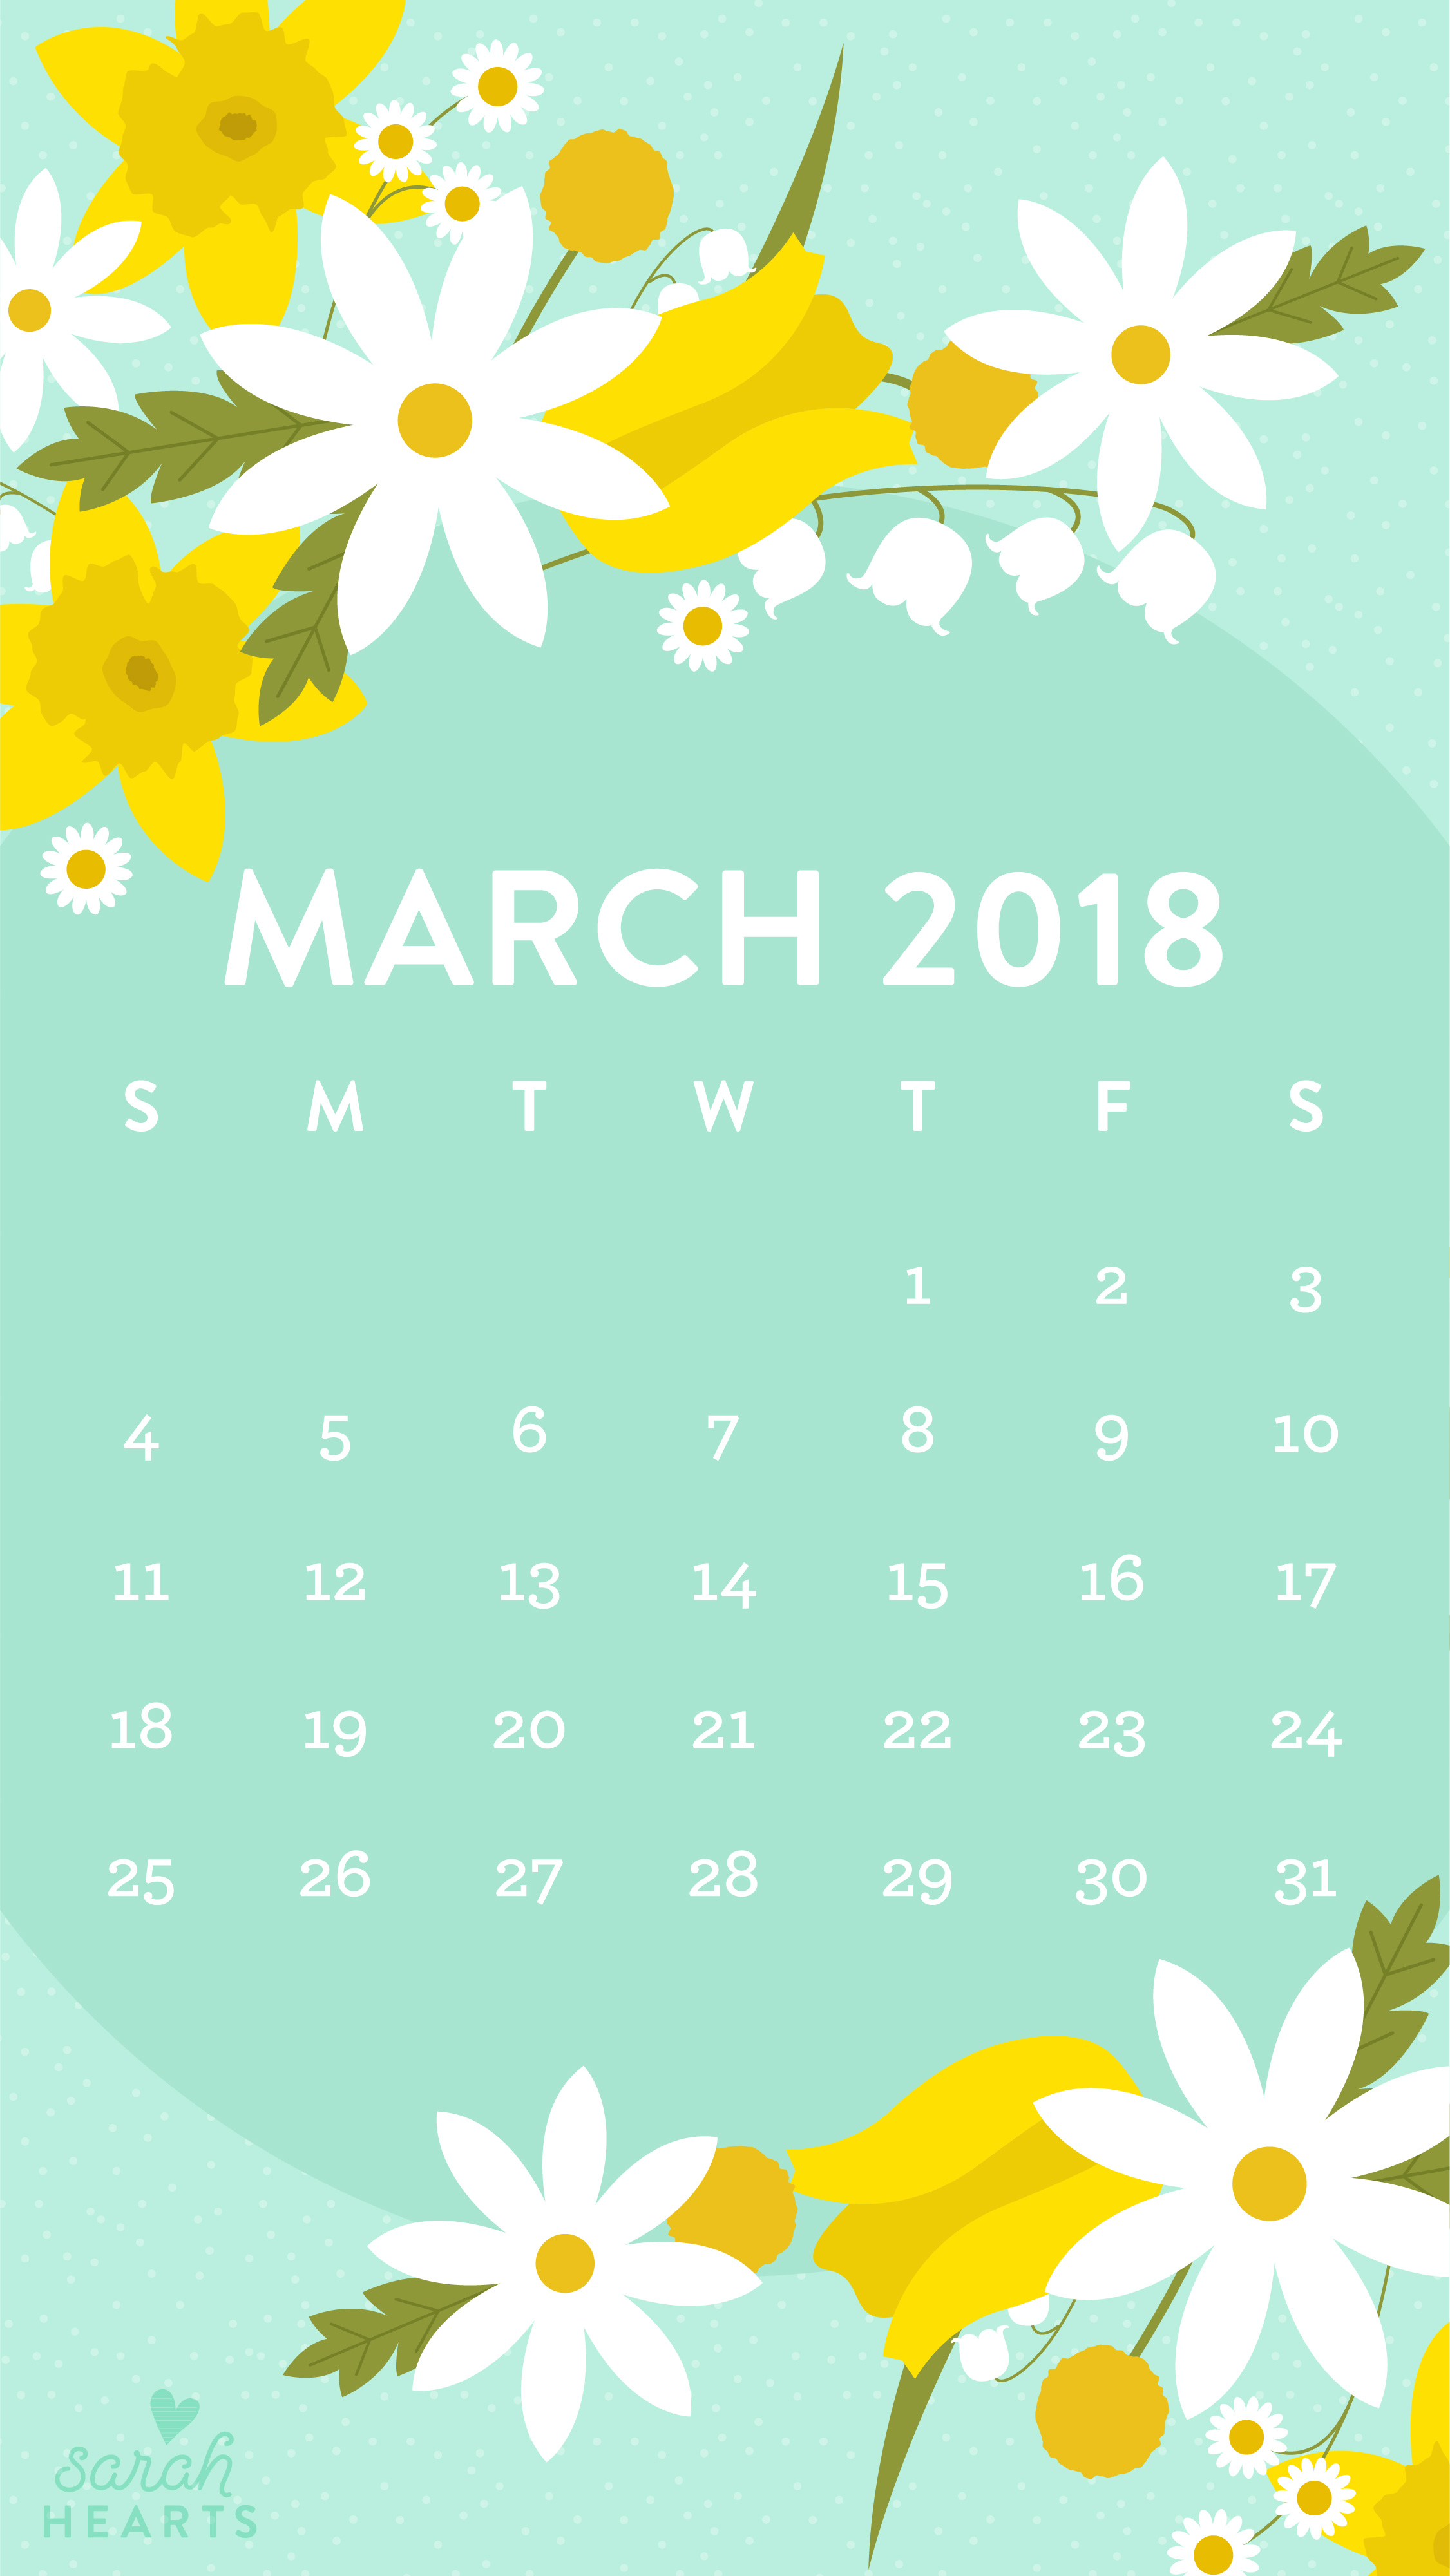 March 2018 Spring Flower Calendar Wallpaper Sarah Hearts